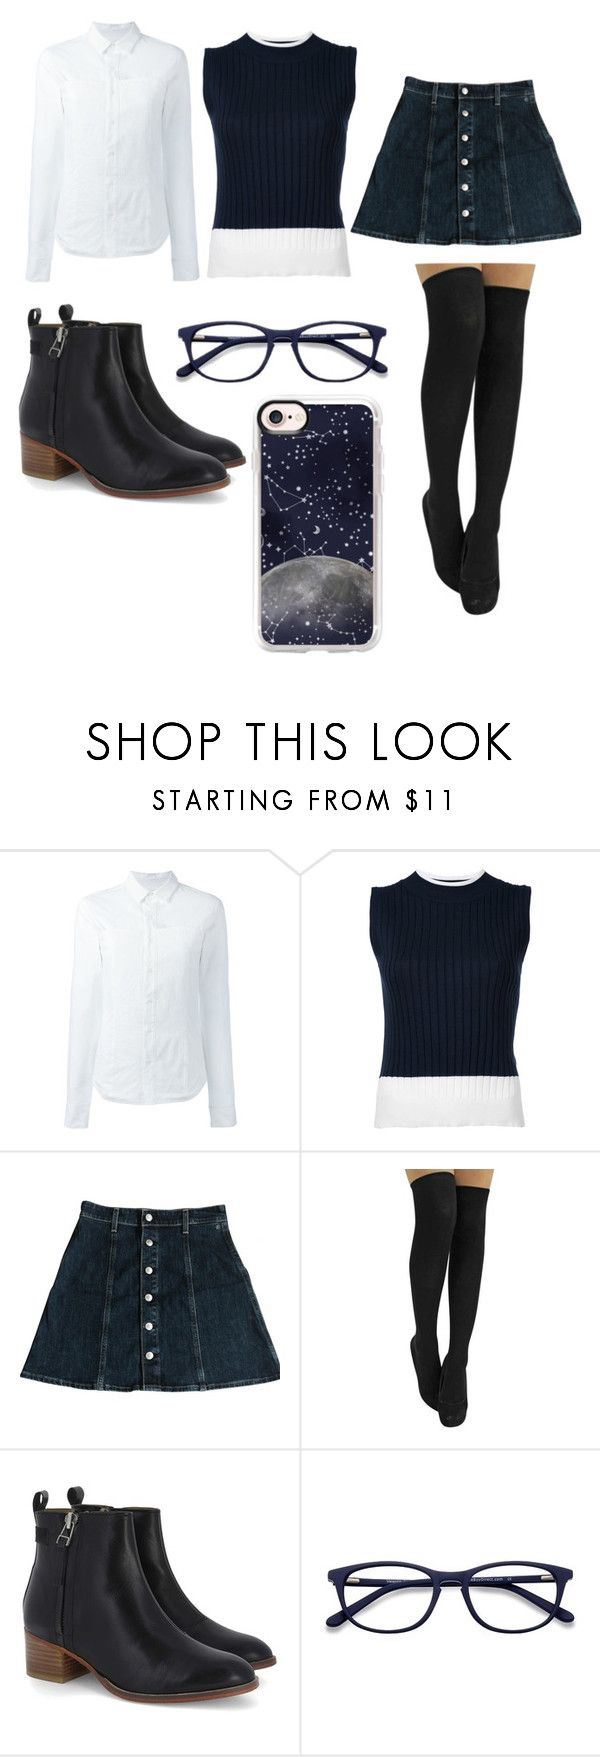 """""""Geek sheak"""" by kayla-allaire on Polyvore featuring A.F. Vandevorst, Loveless, AG Adriano Goldschmied, EyeBuyDirect.com and Casetify"""